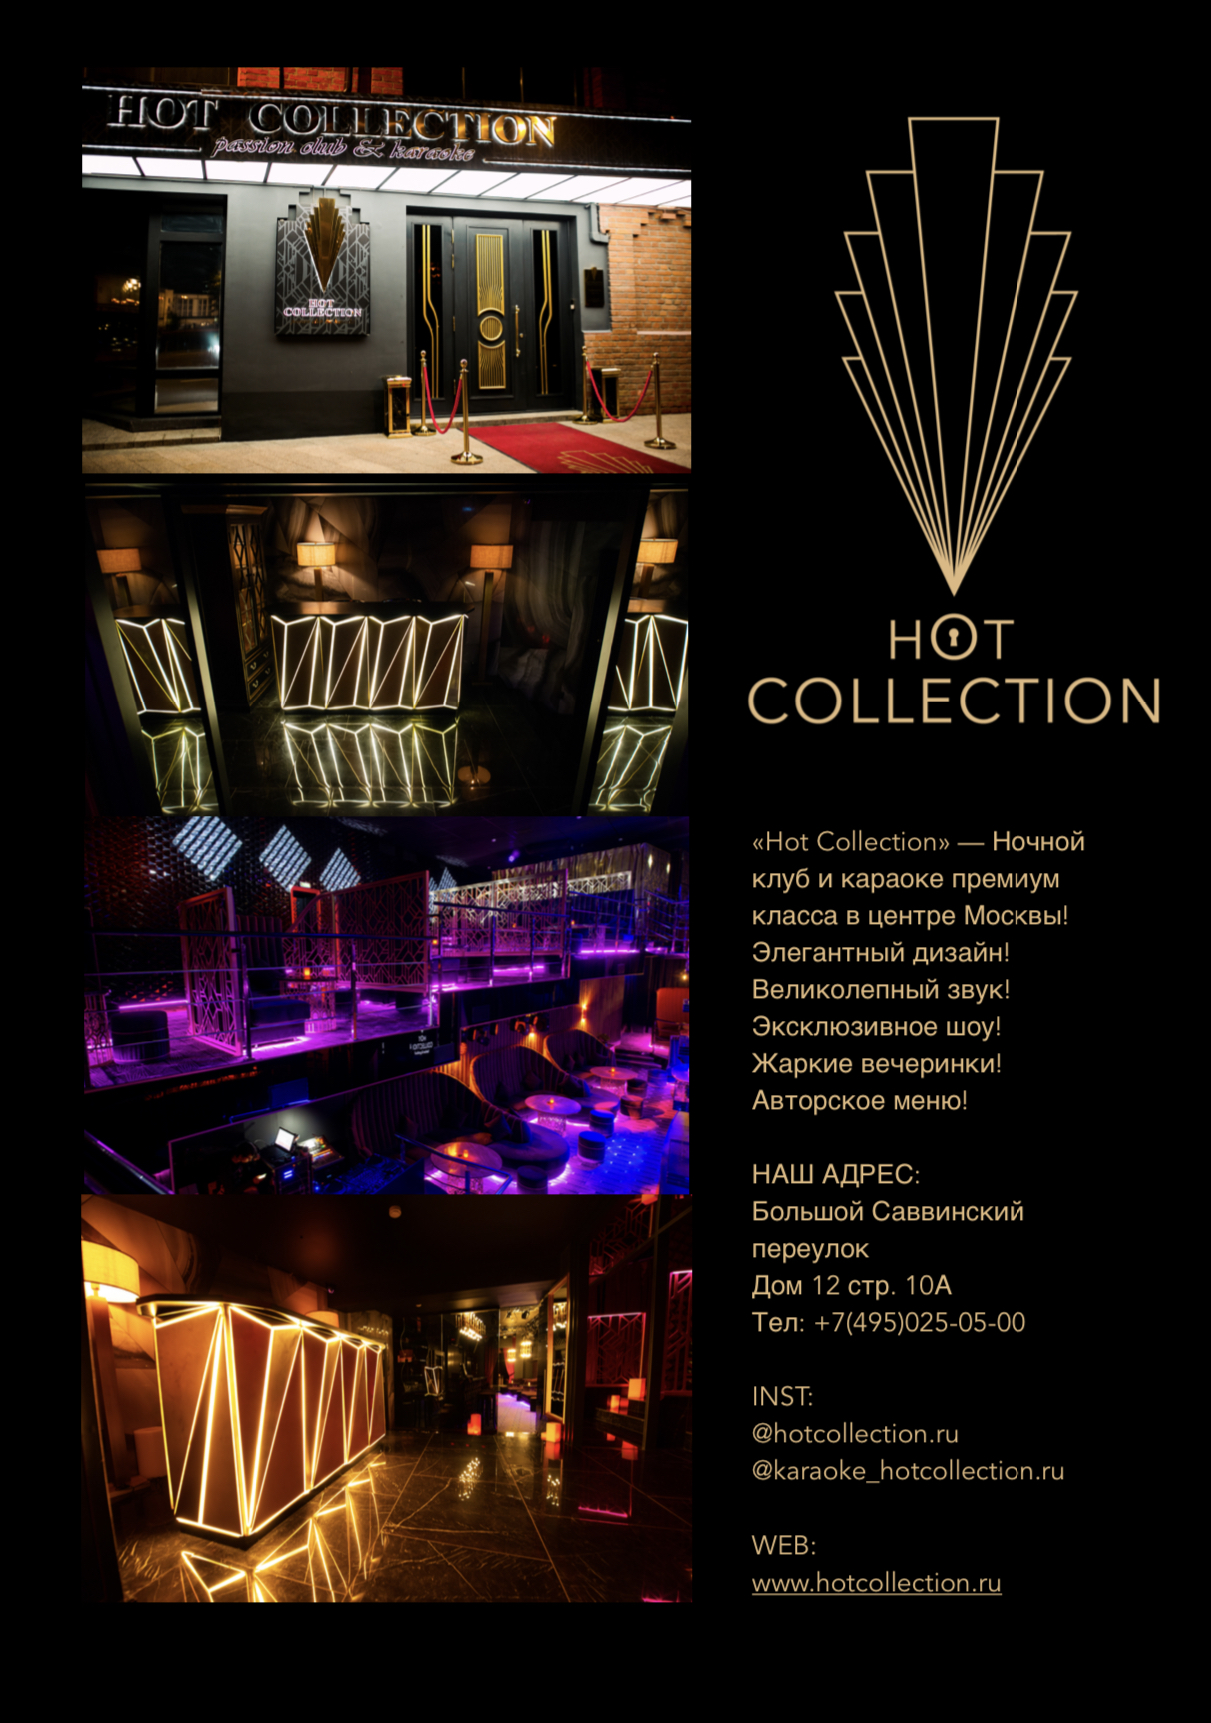 hotcollection_club_karaoke_bloggmagazine